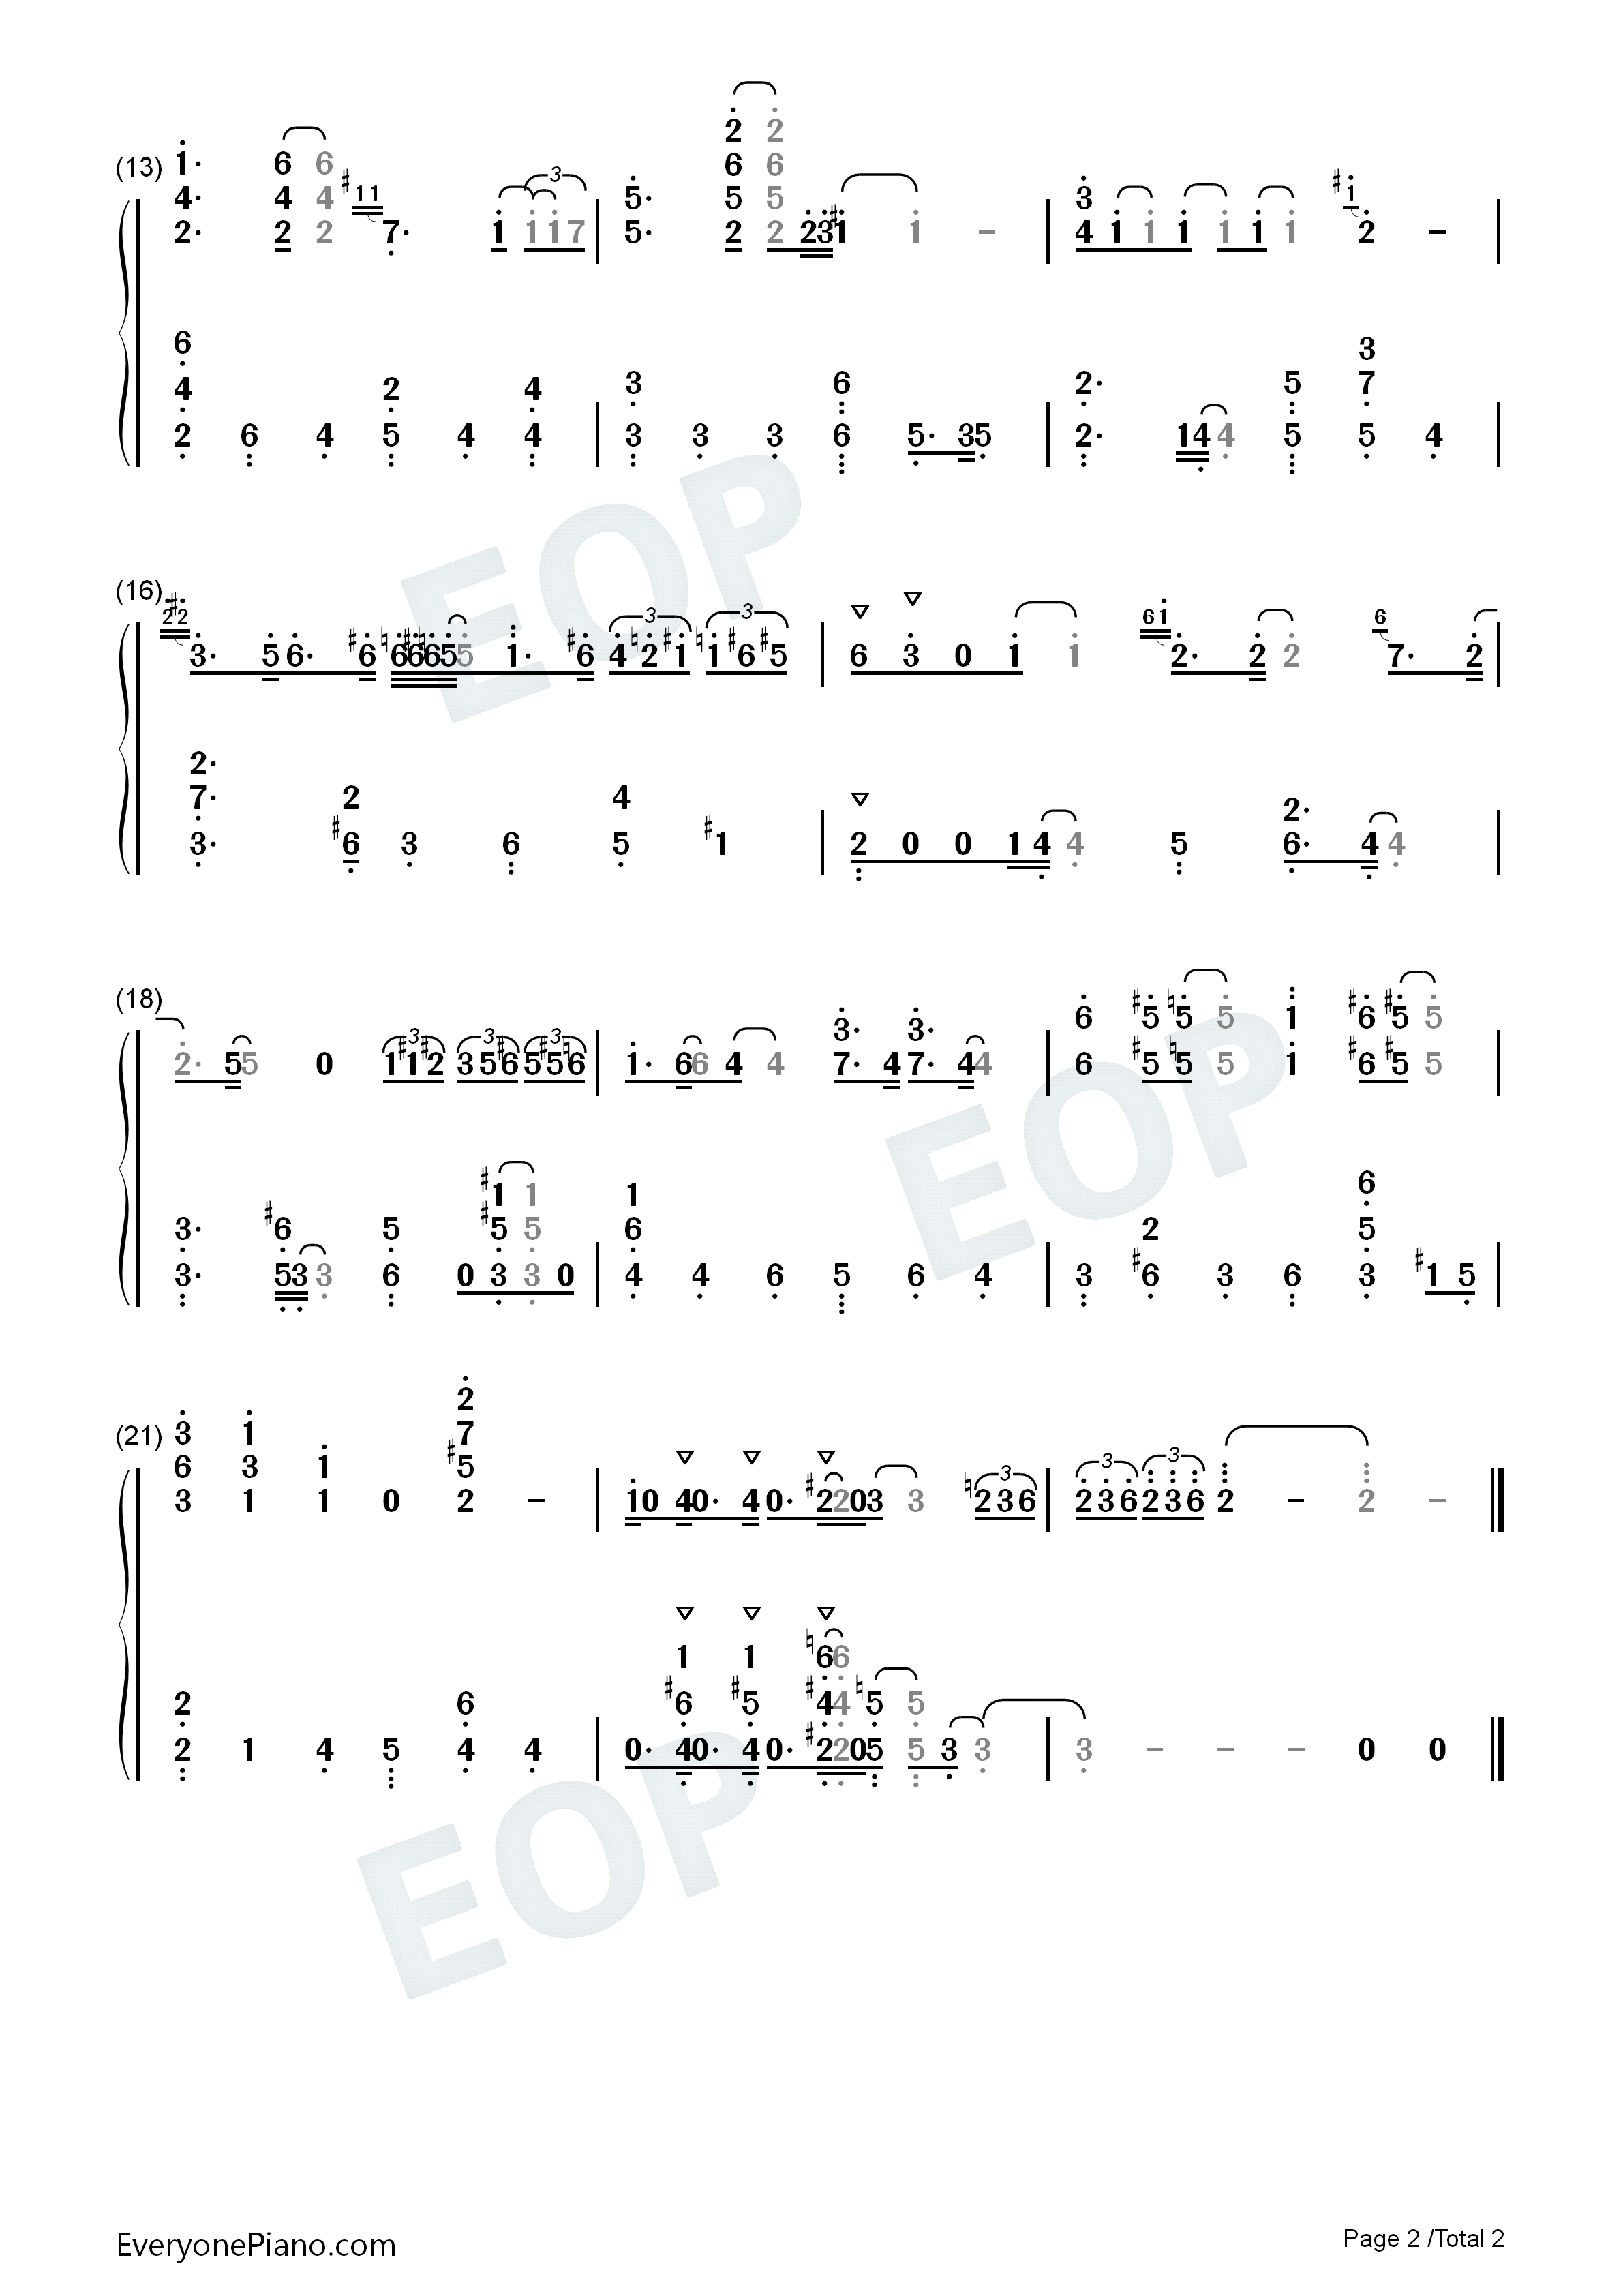 Fly me to the moon bart howard numbered musical notation preview 2 listen now print sheet fly me to the moon bart howard numbered musical notation preview 2 hexwebz Choice Image